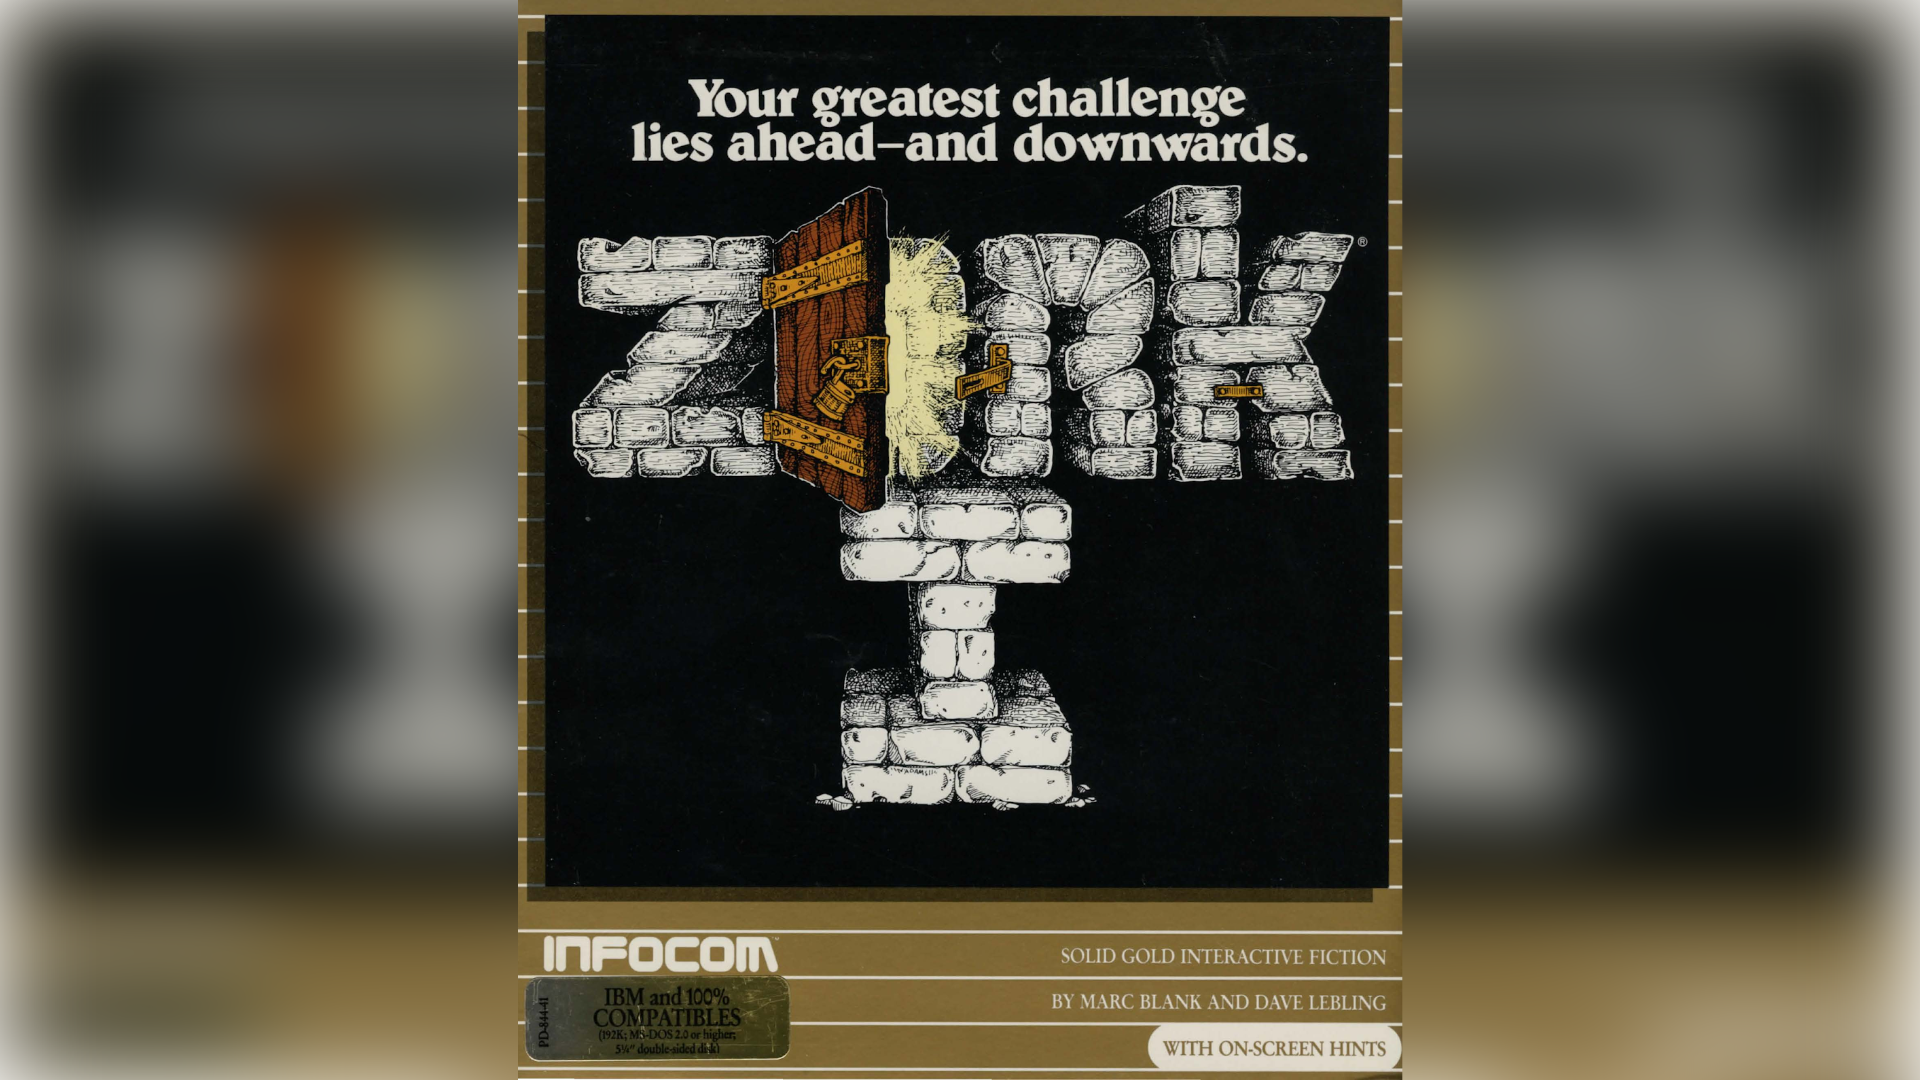 """The Zork game cover art with the text """"Your greatest challenge lies ahead and downwards""""."""